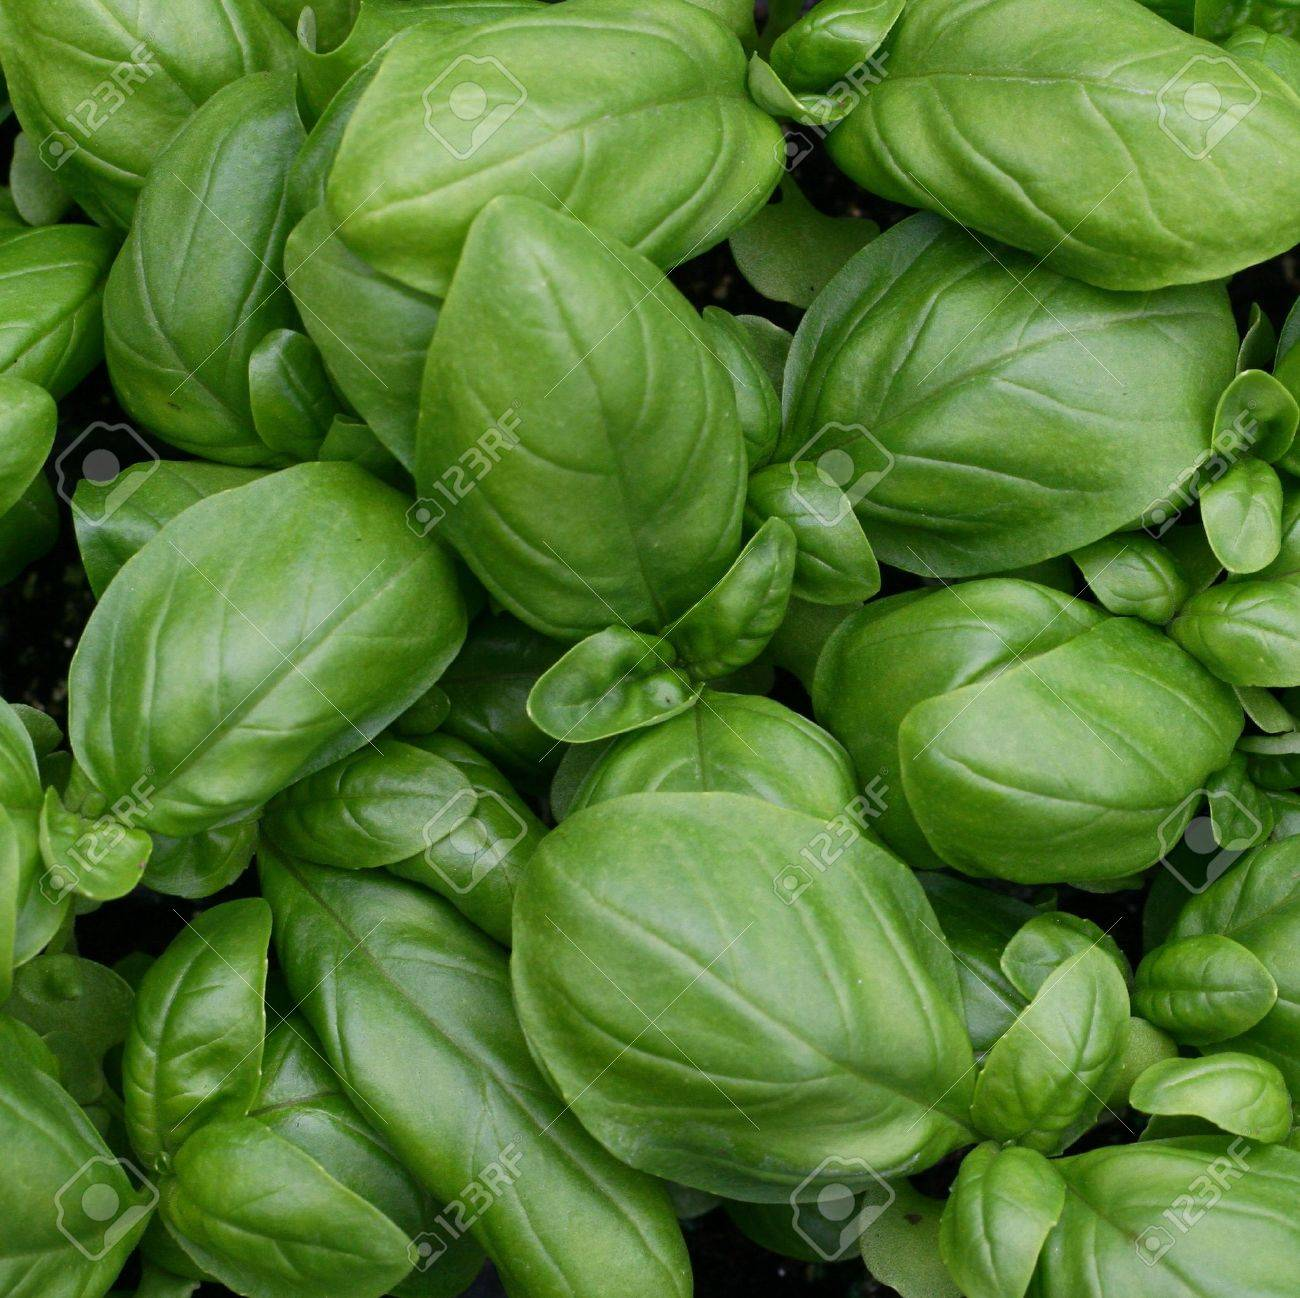 green leaves of fresh basil ready to be used in cooking in Italy - 12869633